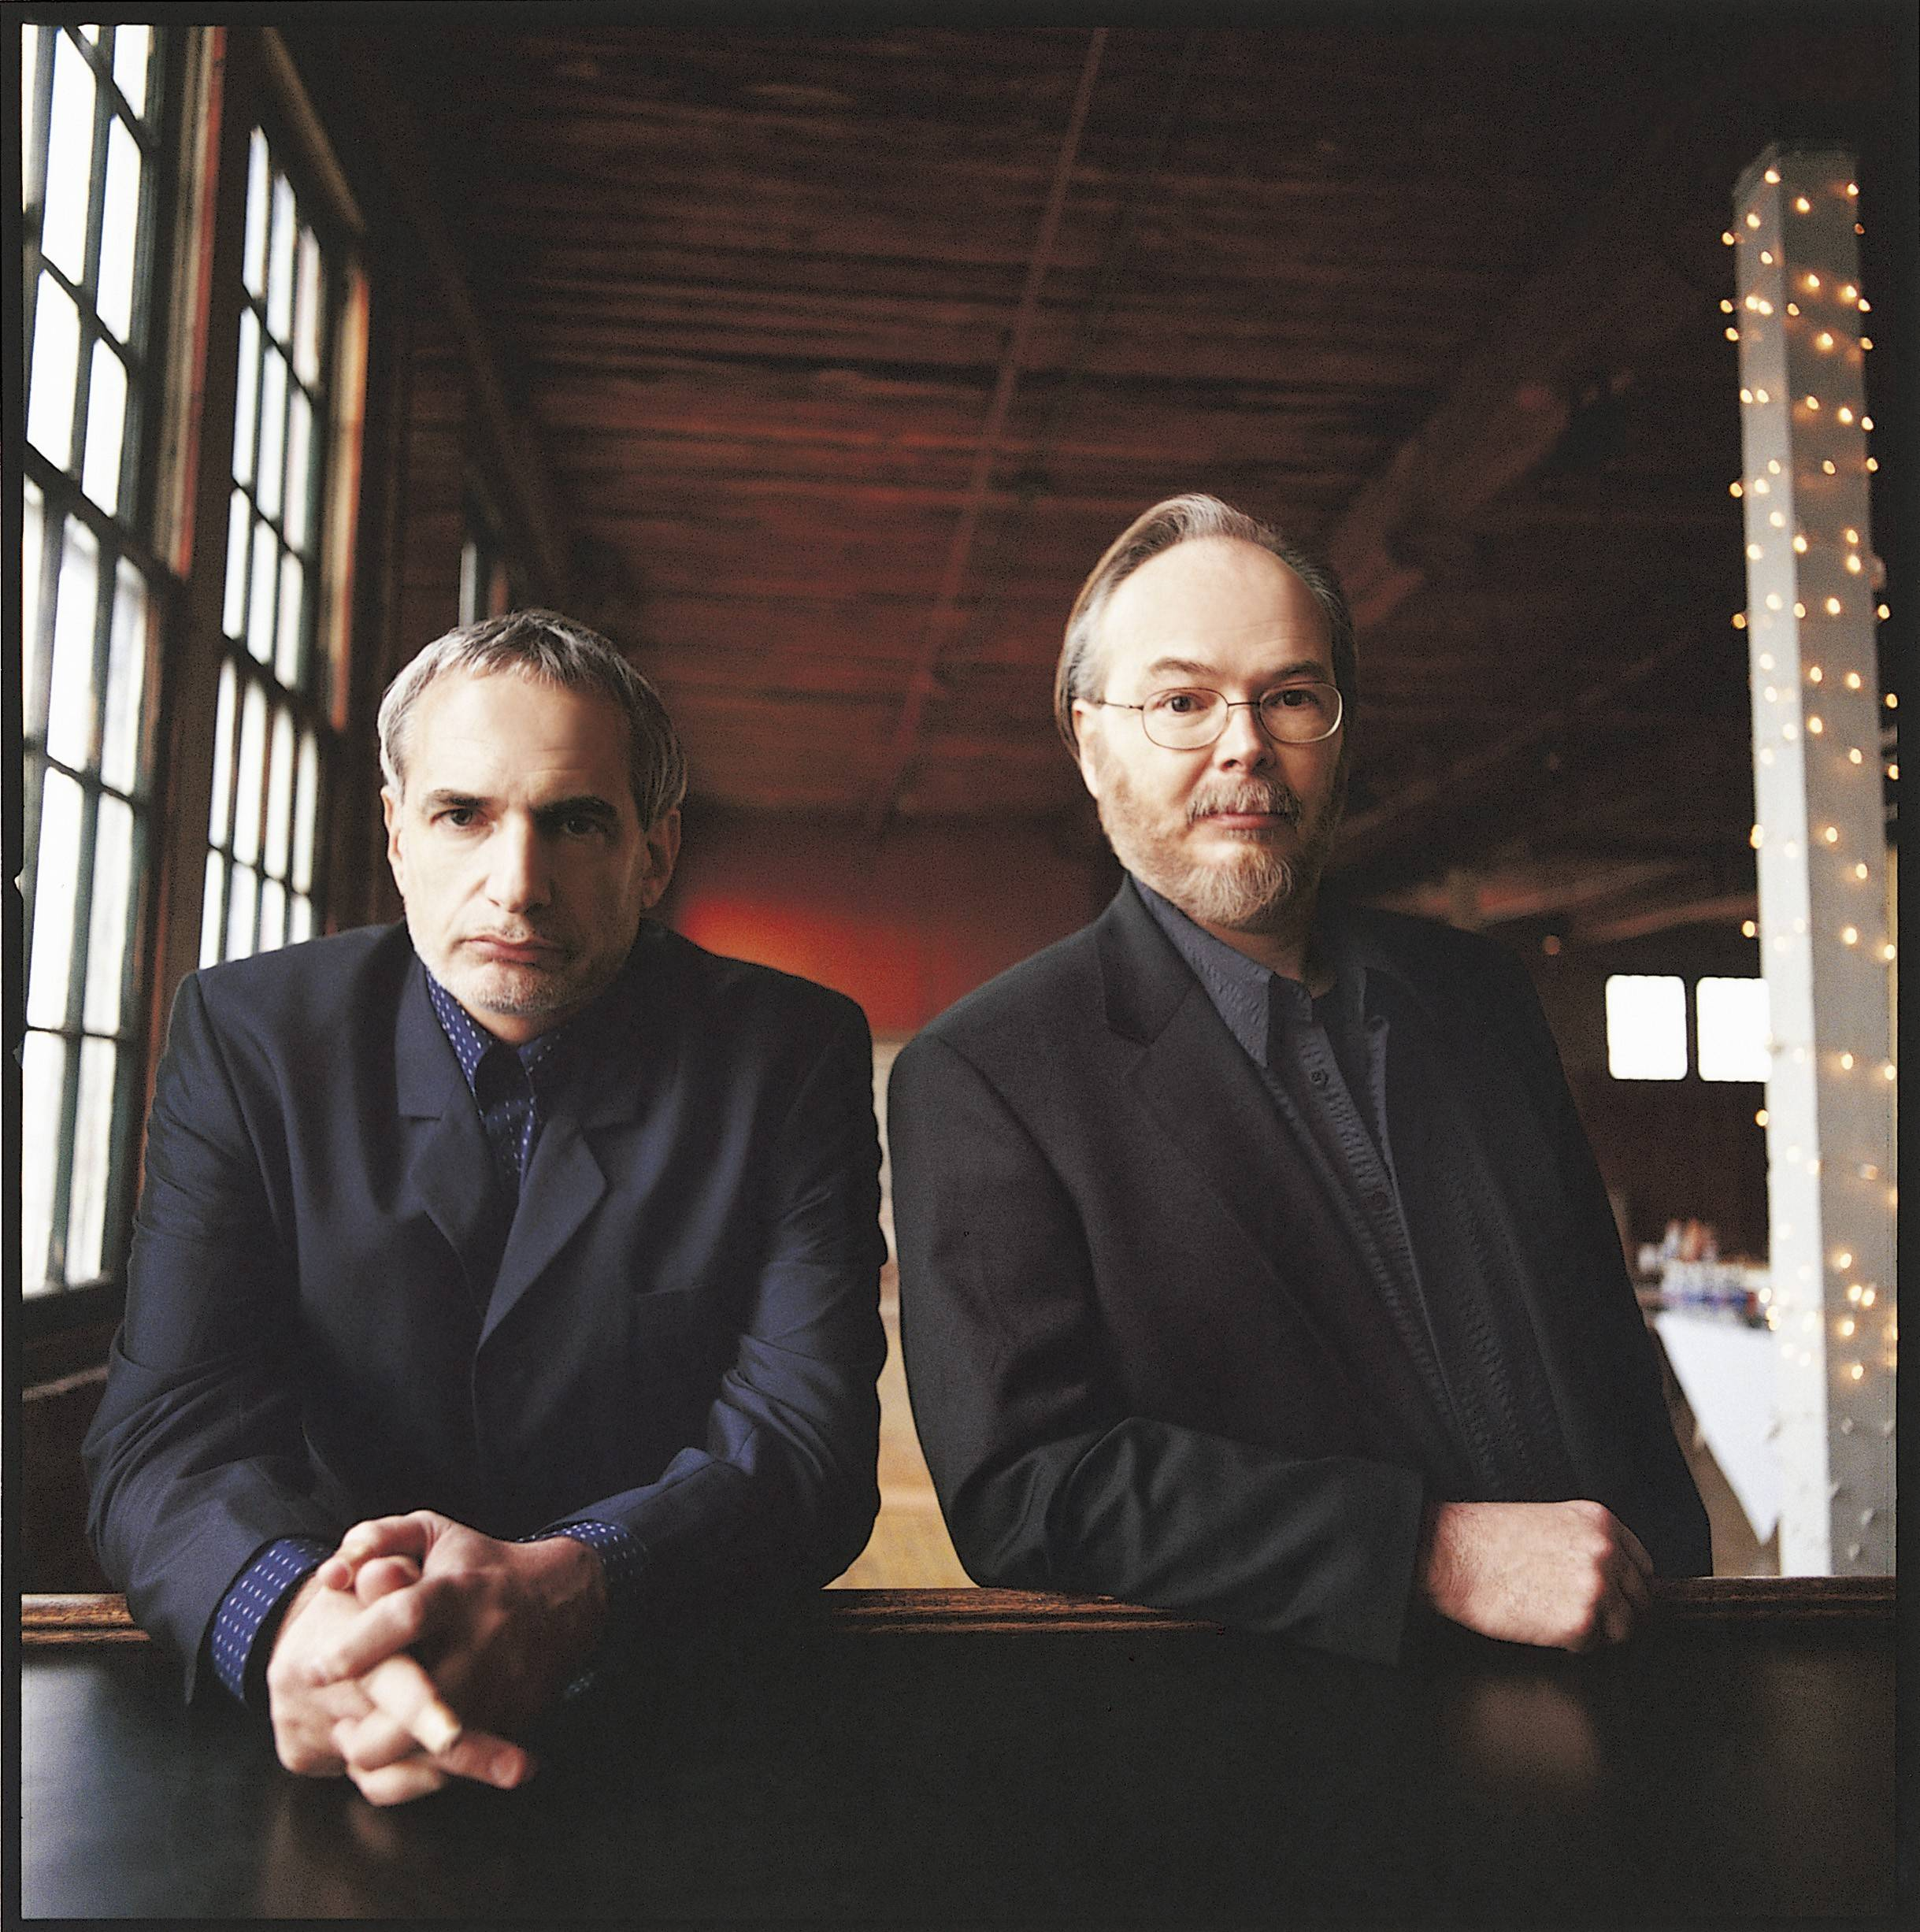 A recent lawsuit involving the rock band, Steely Dan, provides a powerful reminder of the importance of buy/sell agreements and keeping them up to date, a suburban attorney says.